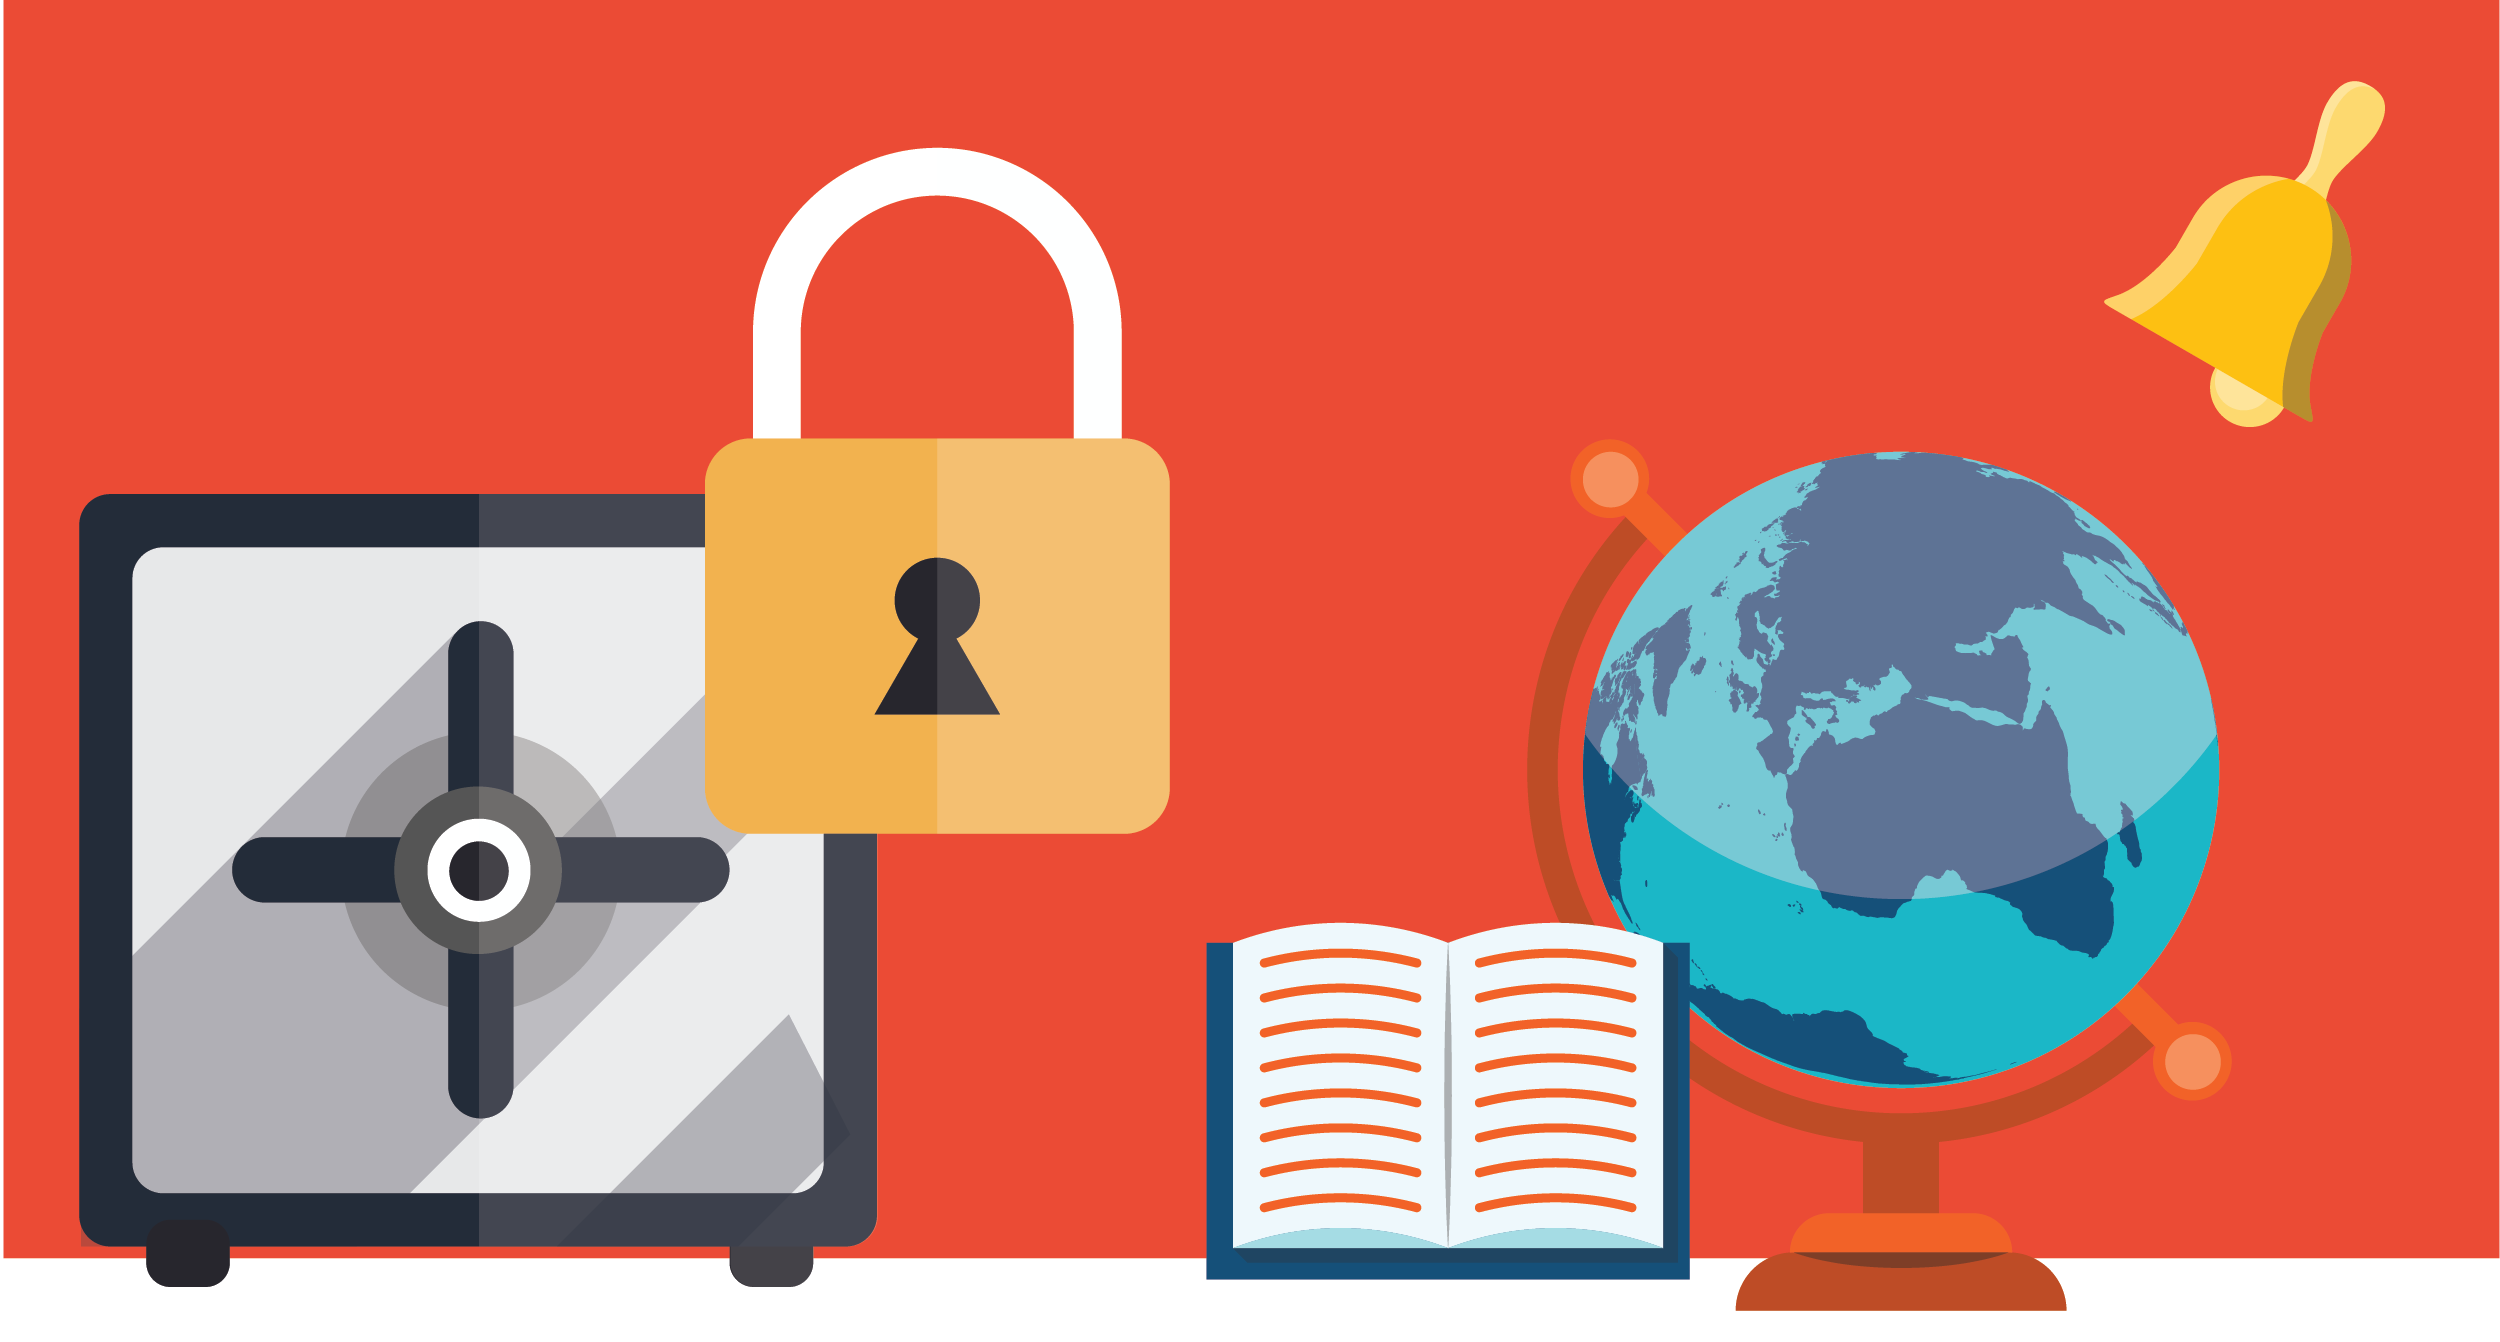 Education Network Security